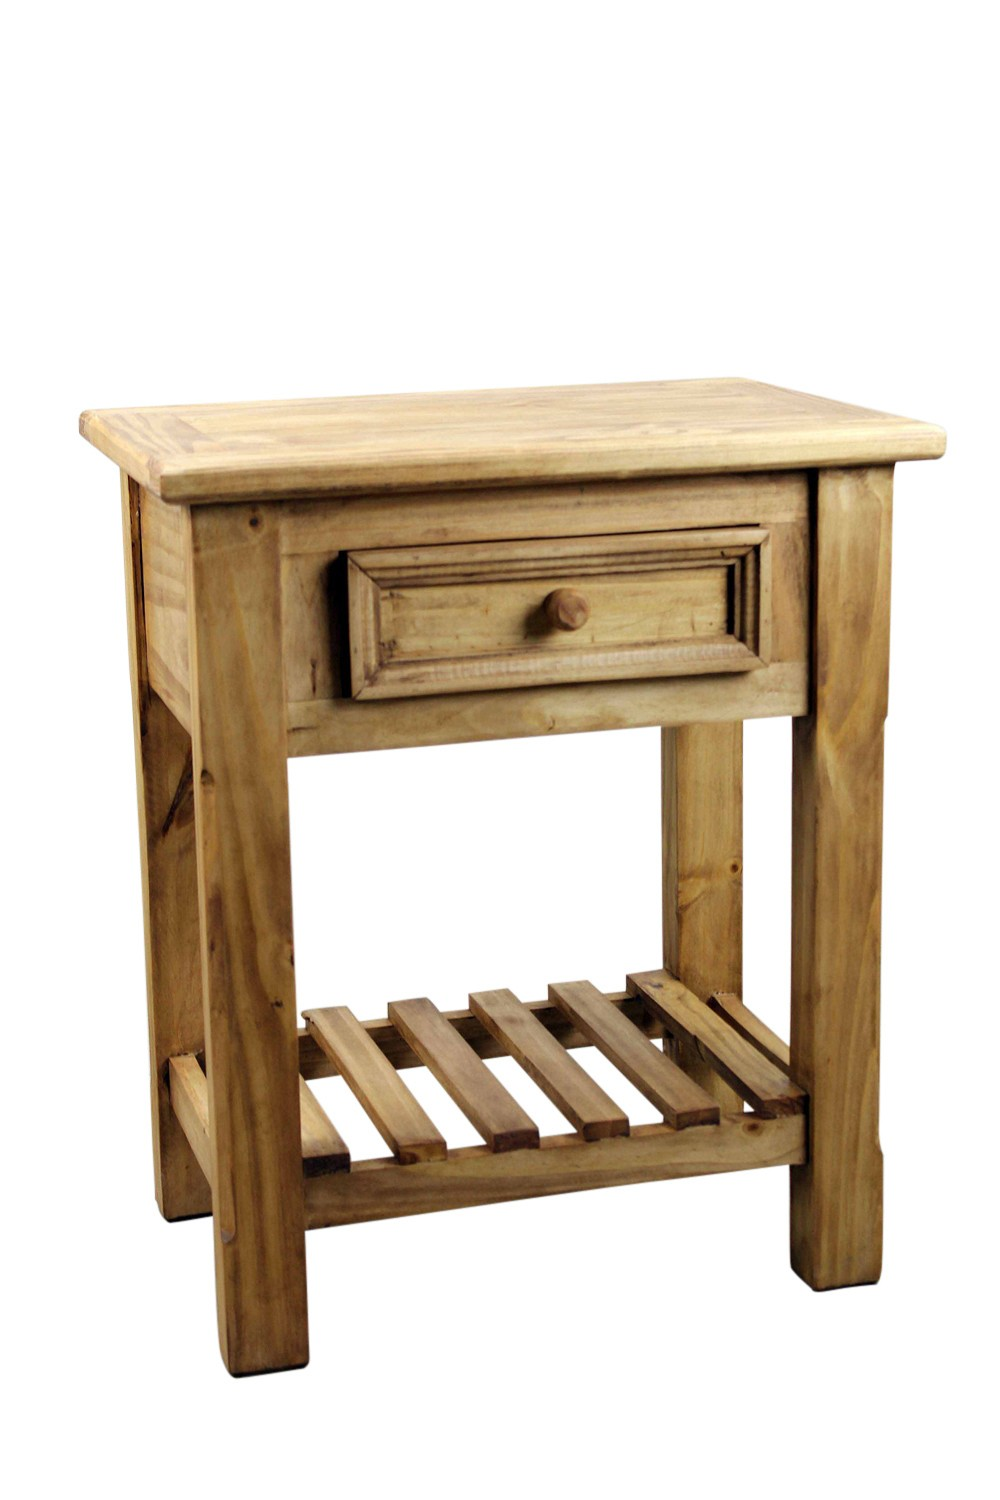 black dog crate end table the outrageous favorite used wood rustic tables for coma frique studio mountain furniture full size exterior oak inexpensiv coffee and forest modern sid